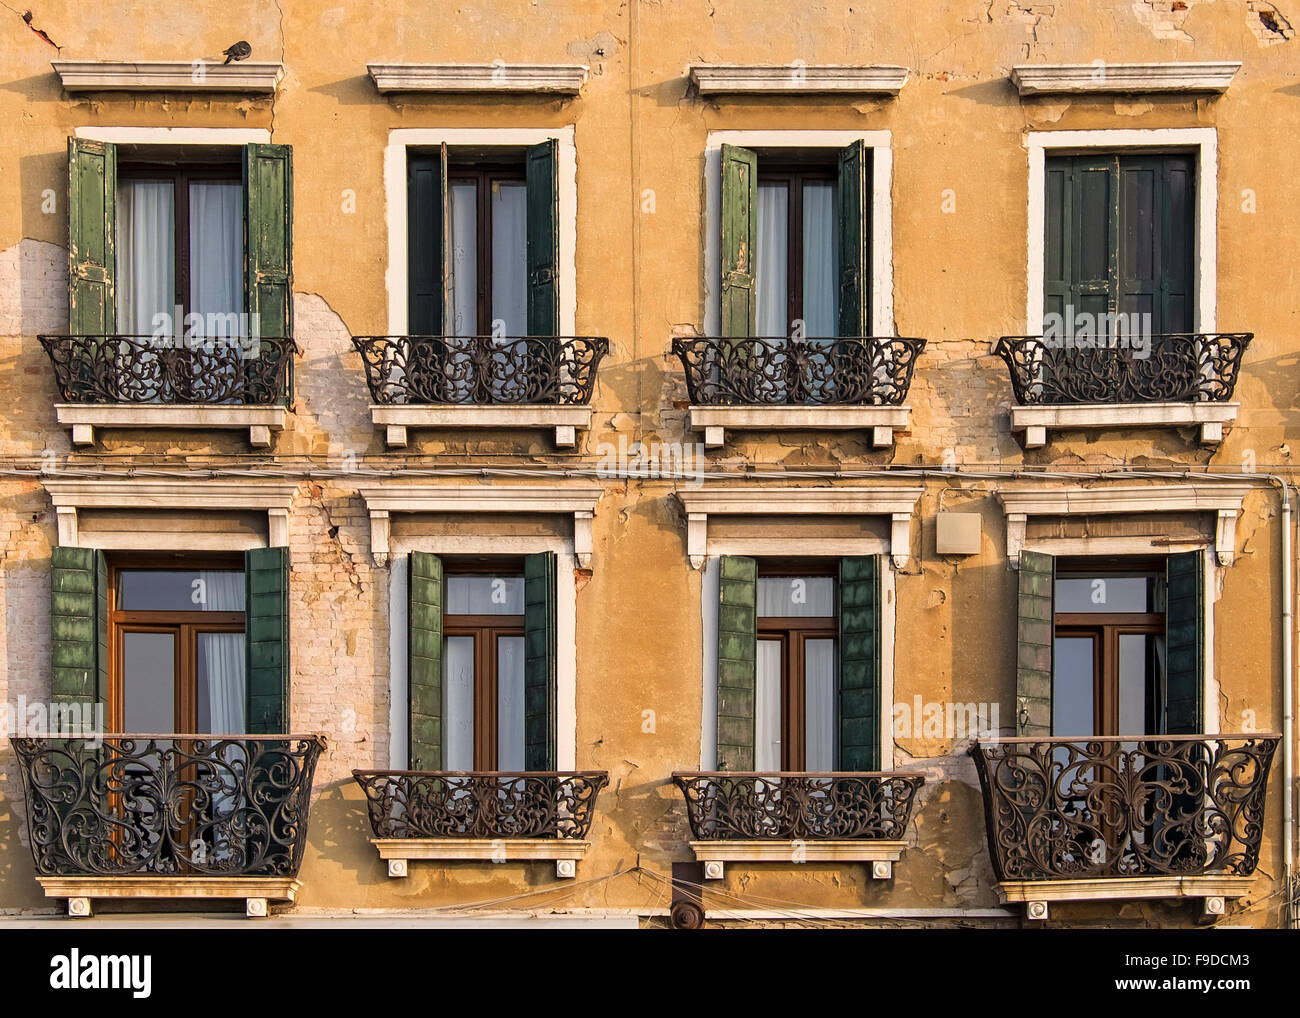 Italy Building Exterior Shutters Windows Stock Photos & Italy ...